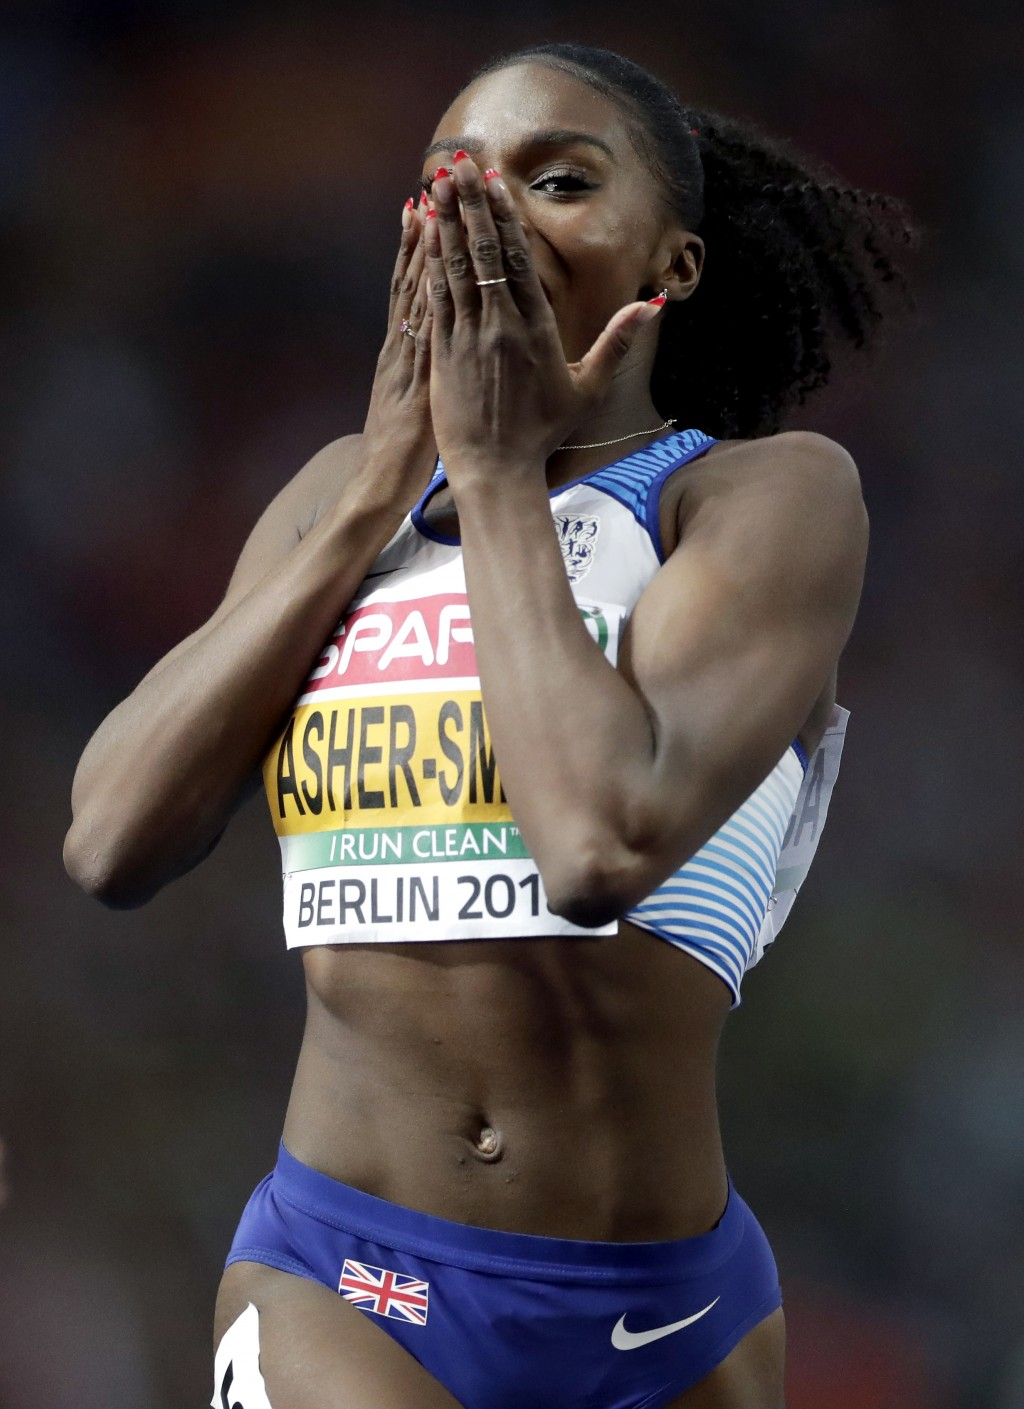 Britain's gold medalist Dina Asher-Smith celebrates winning the women's 200 meter final race at the European Athletics Championships in Berlin, German